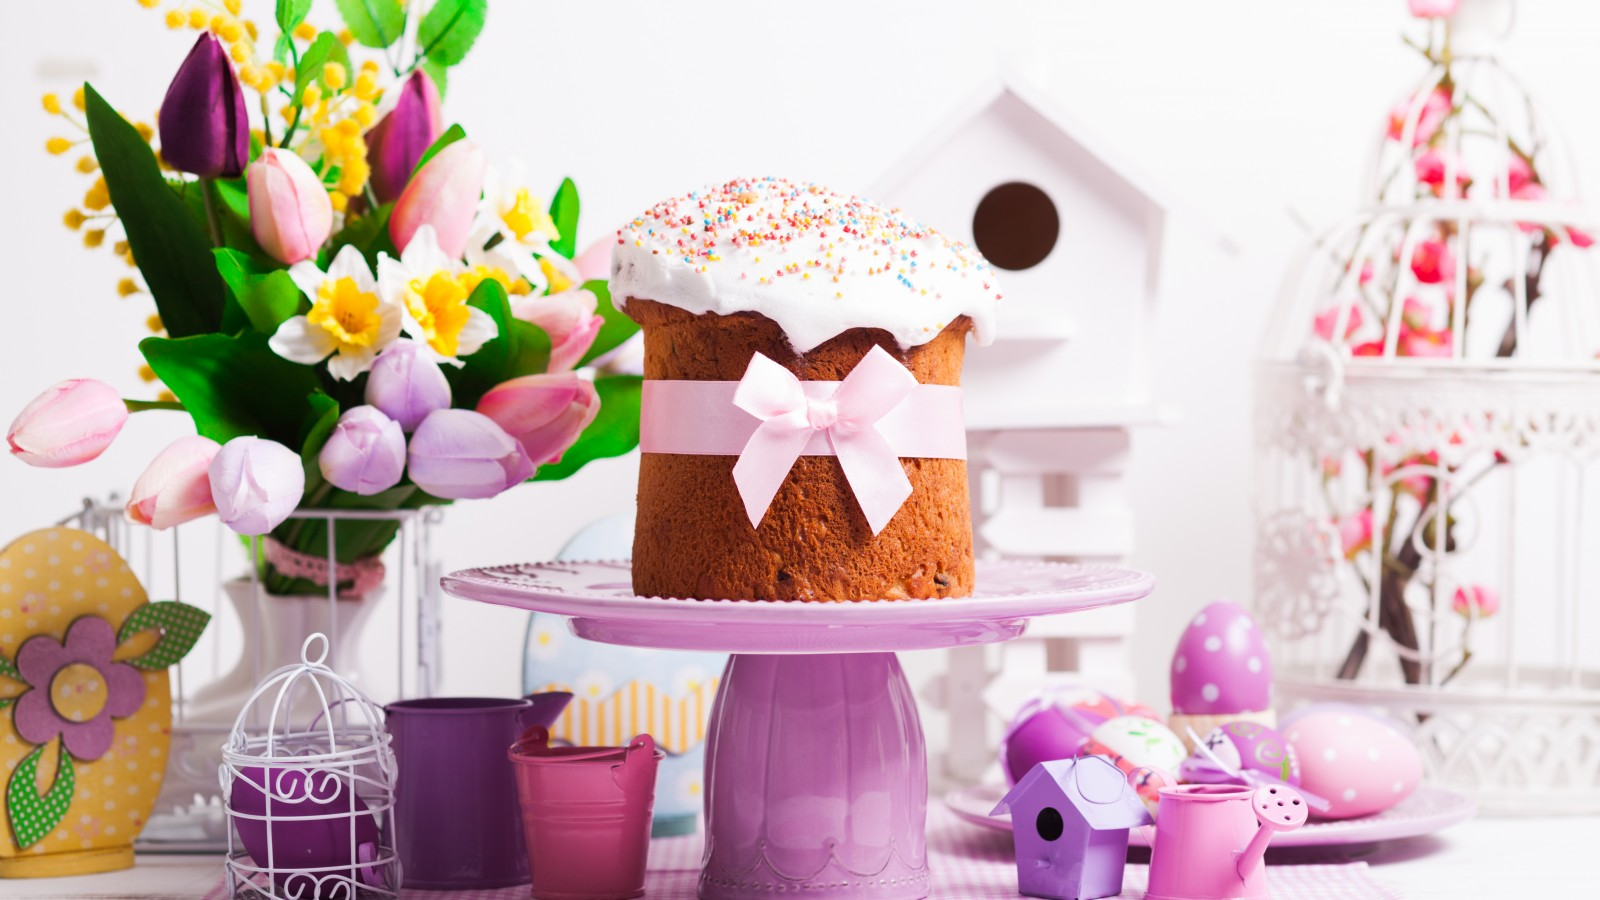 easter-cake-eggs-tulips-6172